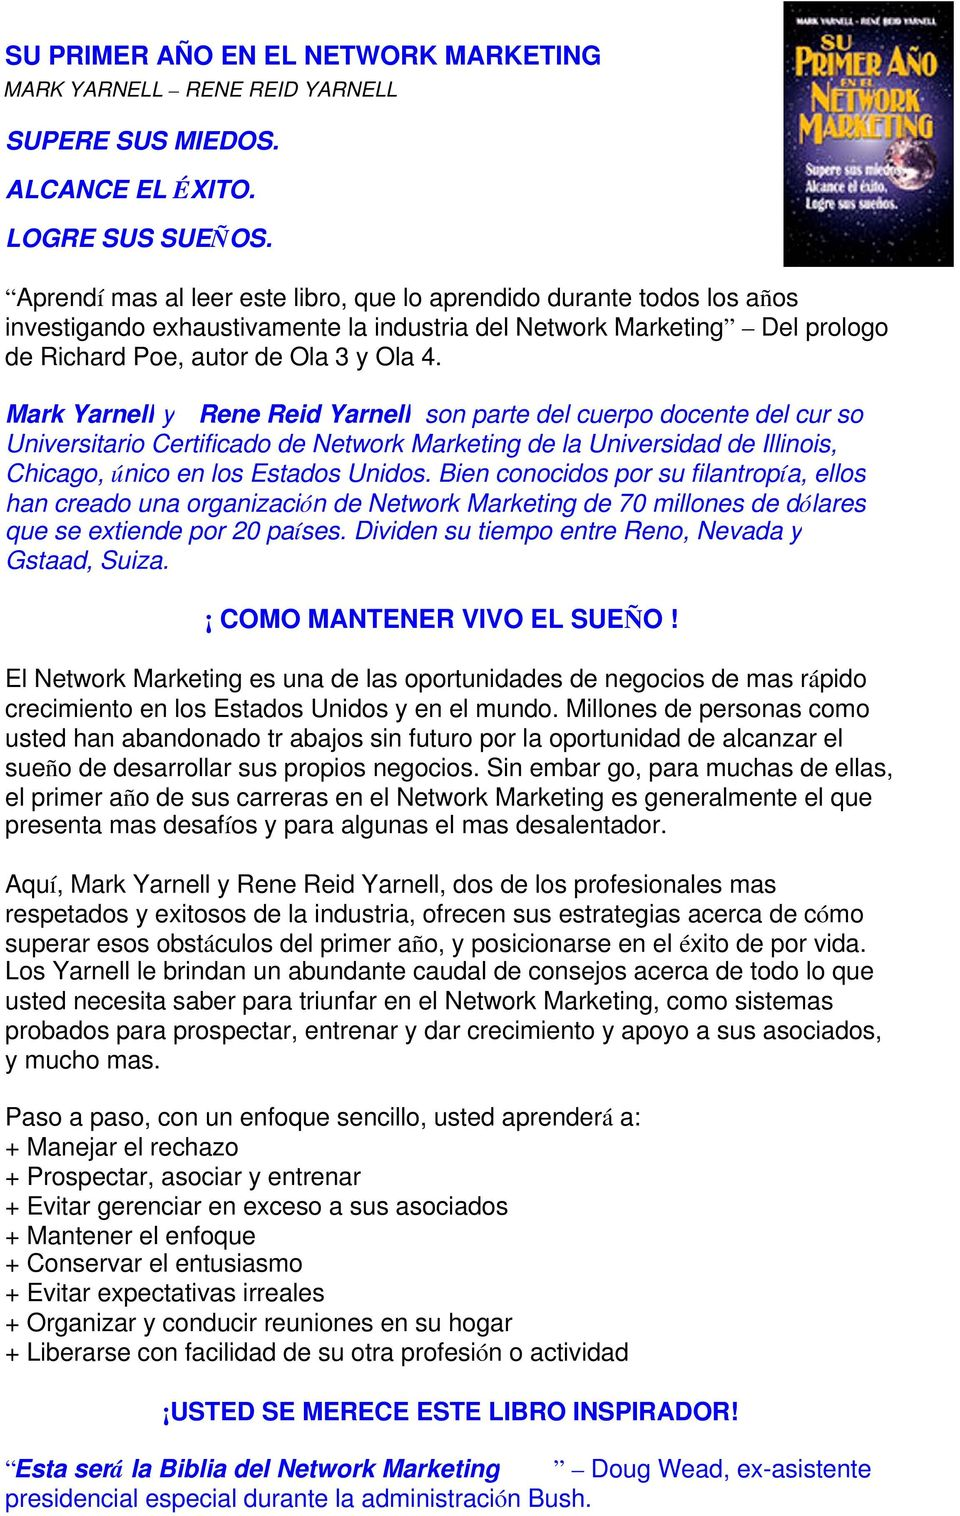 Mark Yarnell y Rene Reid Yarnell son parte del cuerpo docente del cur so Universitario Certificado de Network Marketing de la Universidad de Illinois, Chicago, único en los Estados Unidos.